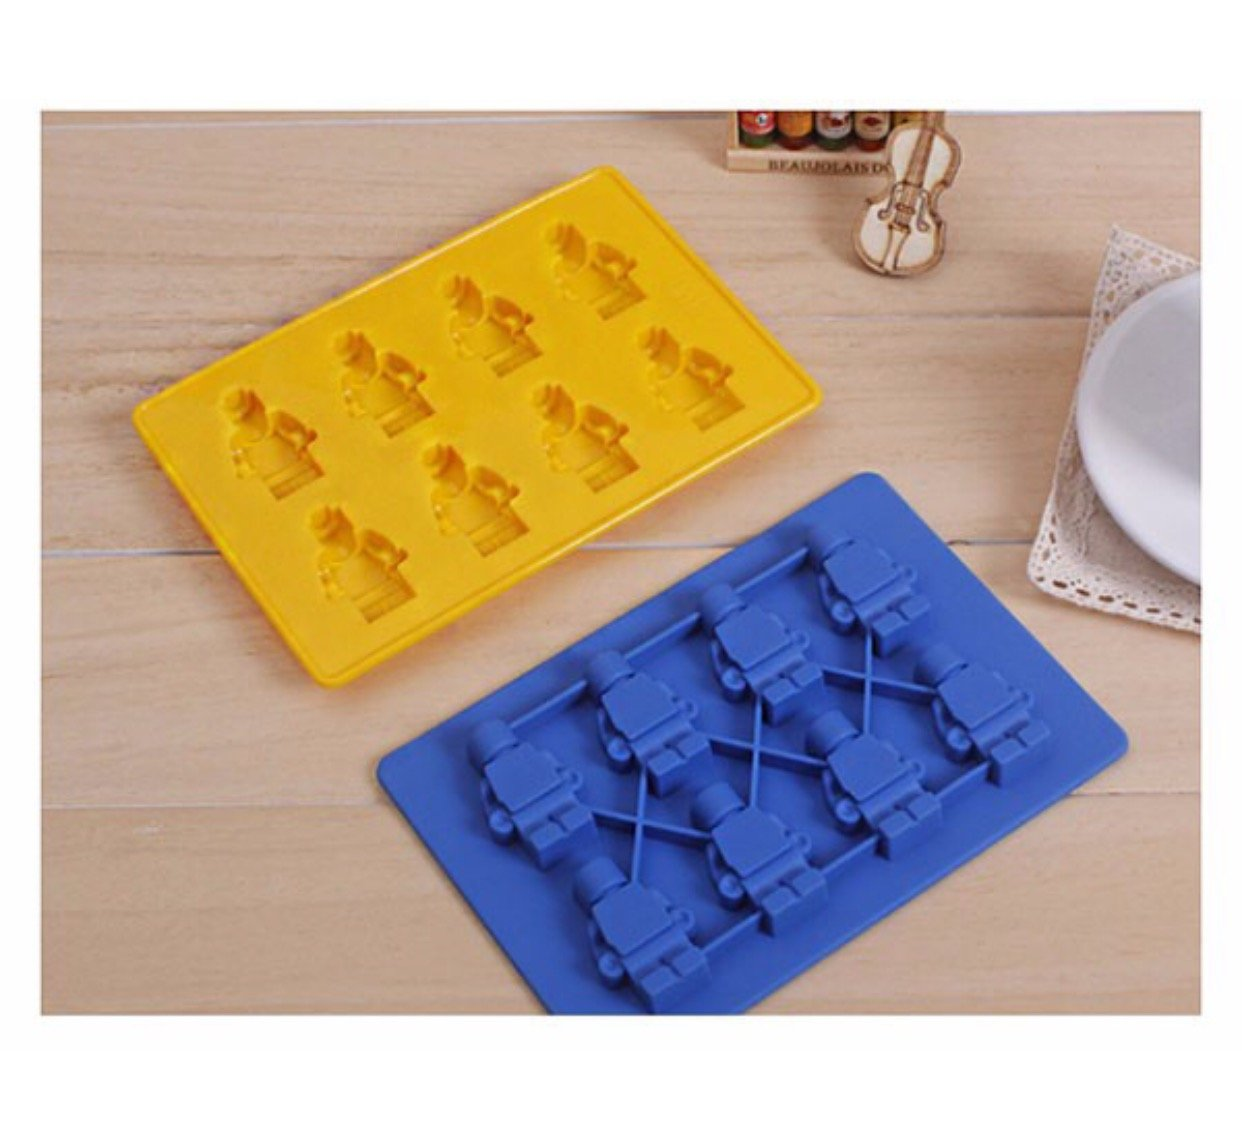 Lovetosell123 Ice maker mold 1pc Silicone Lego Robot Ice Cube Cake Chocolate Molds Jelly Molds Candy Cake Mould Bakeware Kitchen Accessories by Lovetosell123